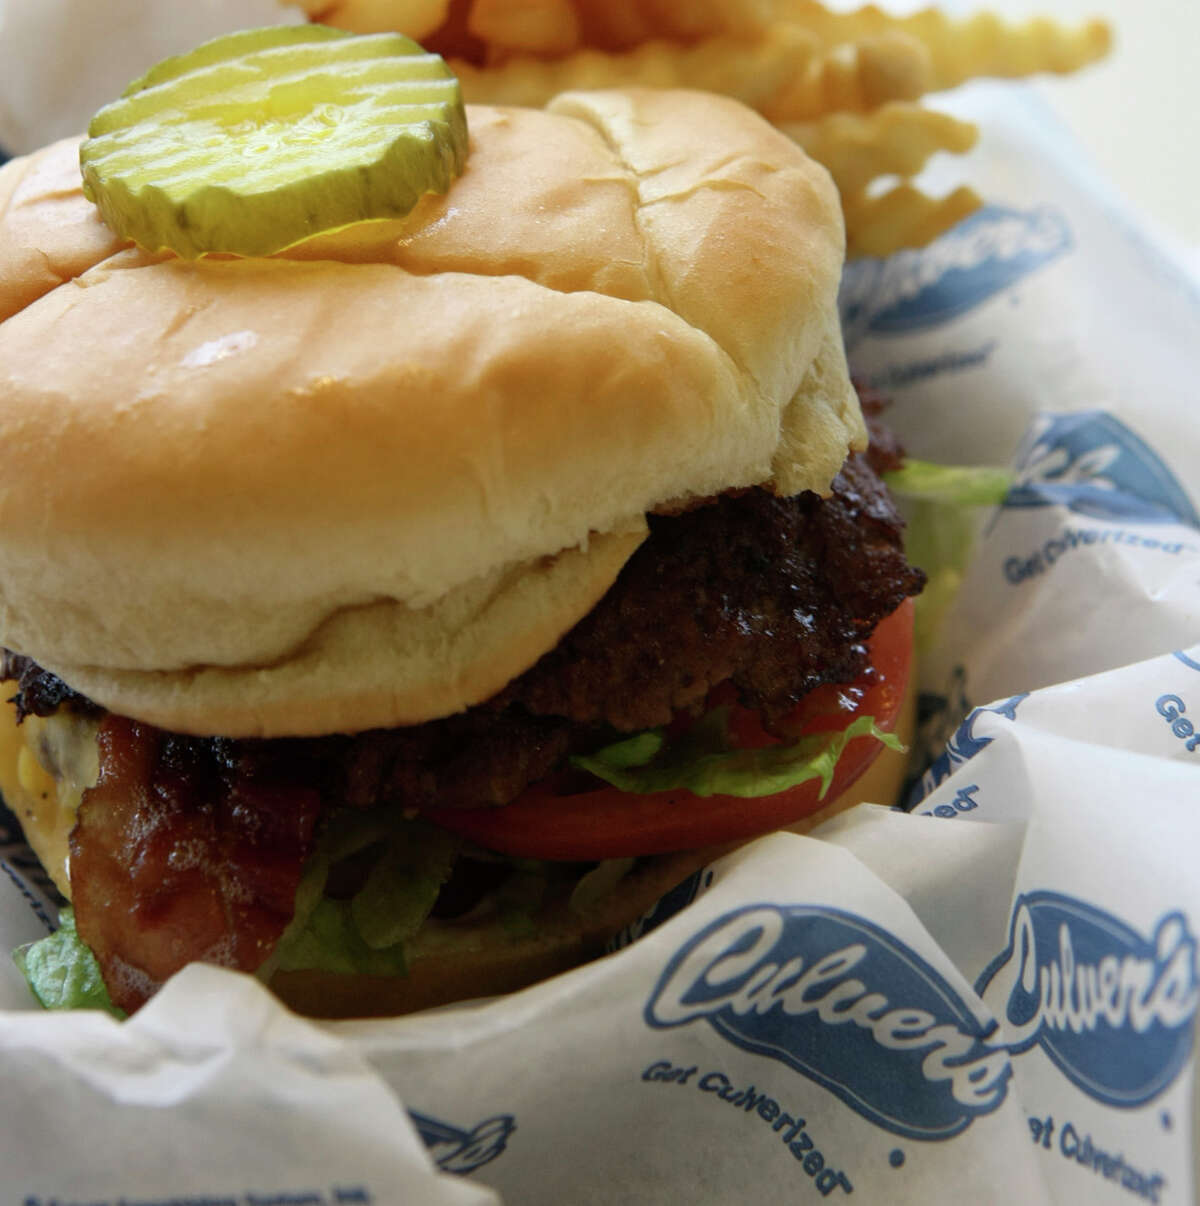 No. 3: Culver's   18% of people who went to Culver's in the last six months said Culver's had the best customer service.